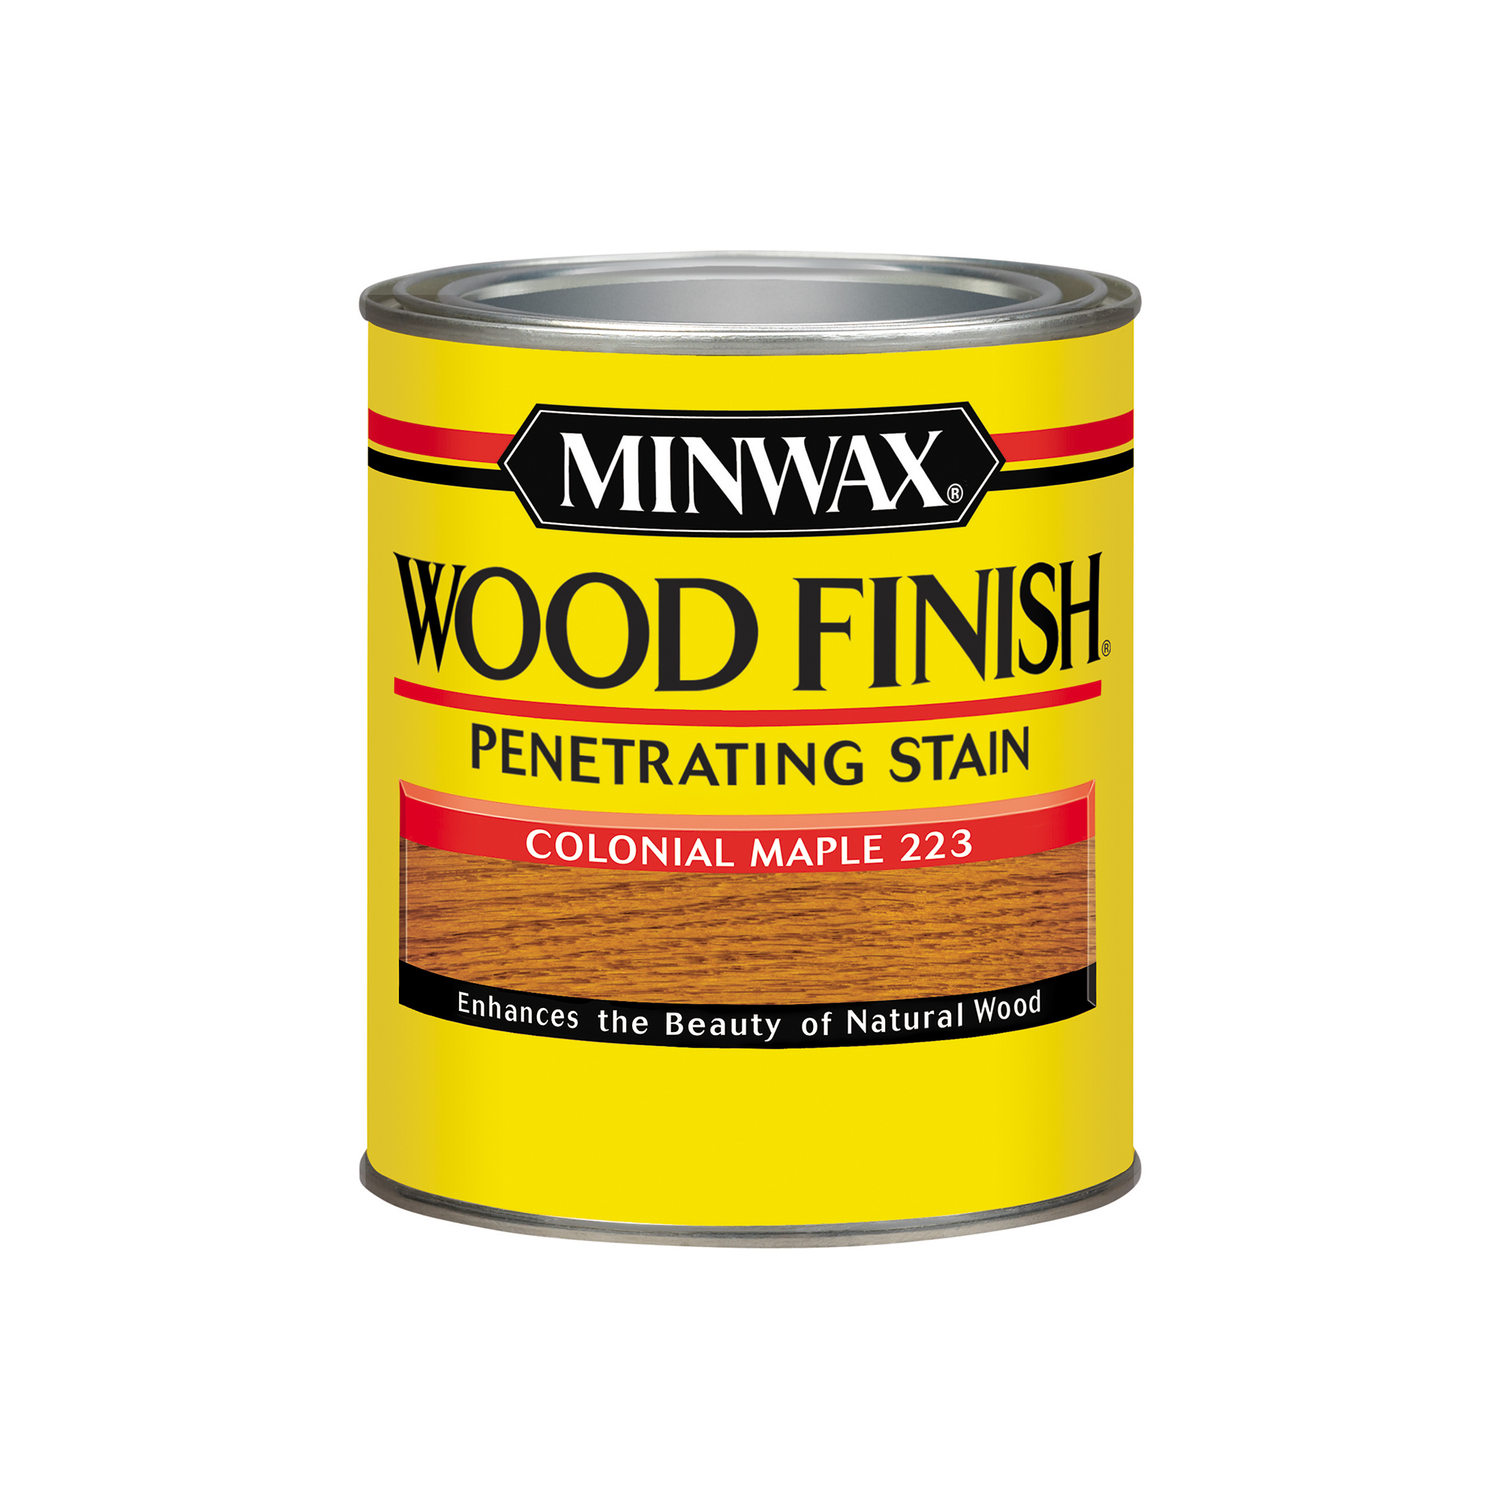 Minwax  Wood Finish  Semi-Transparent  Colonial Maple  Oil-Based  Oil  Stain  1 qt.